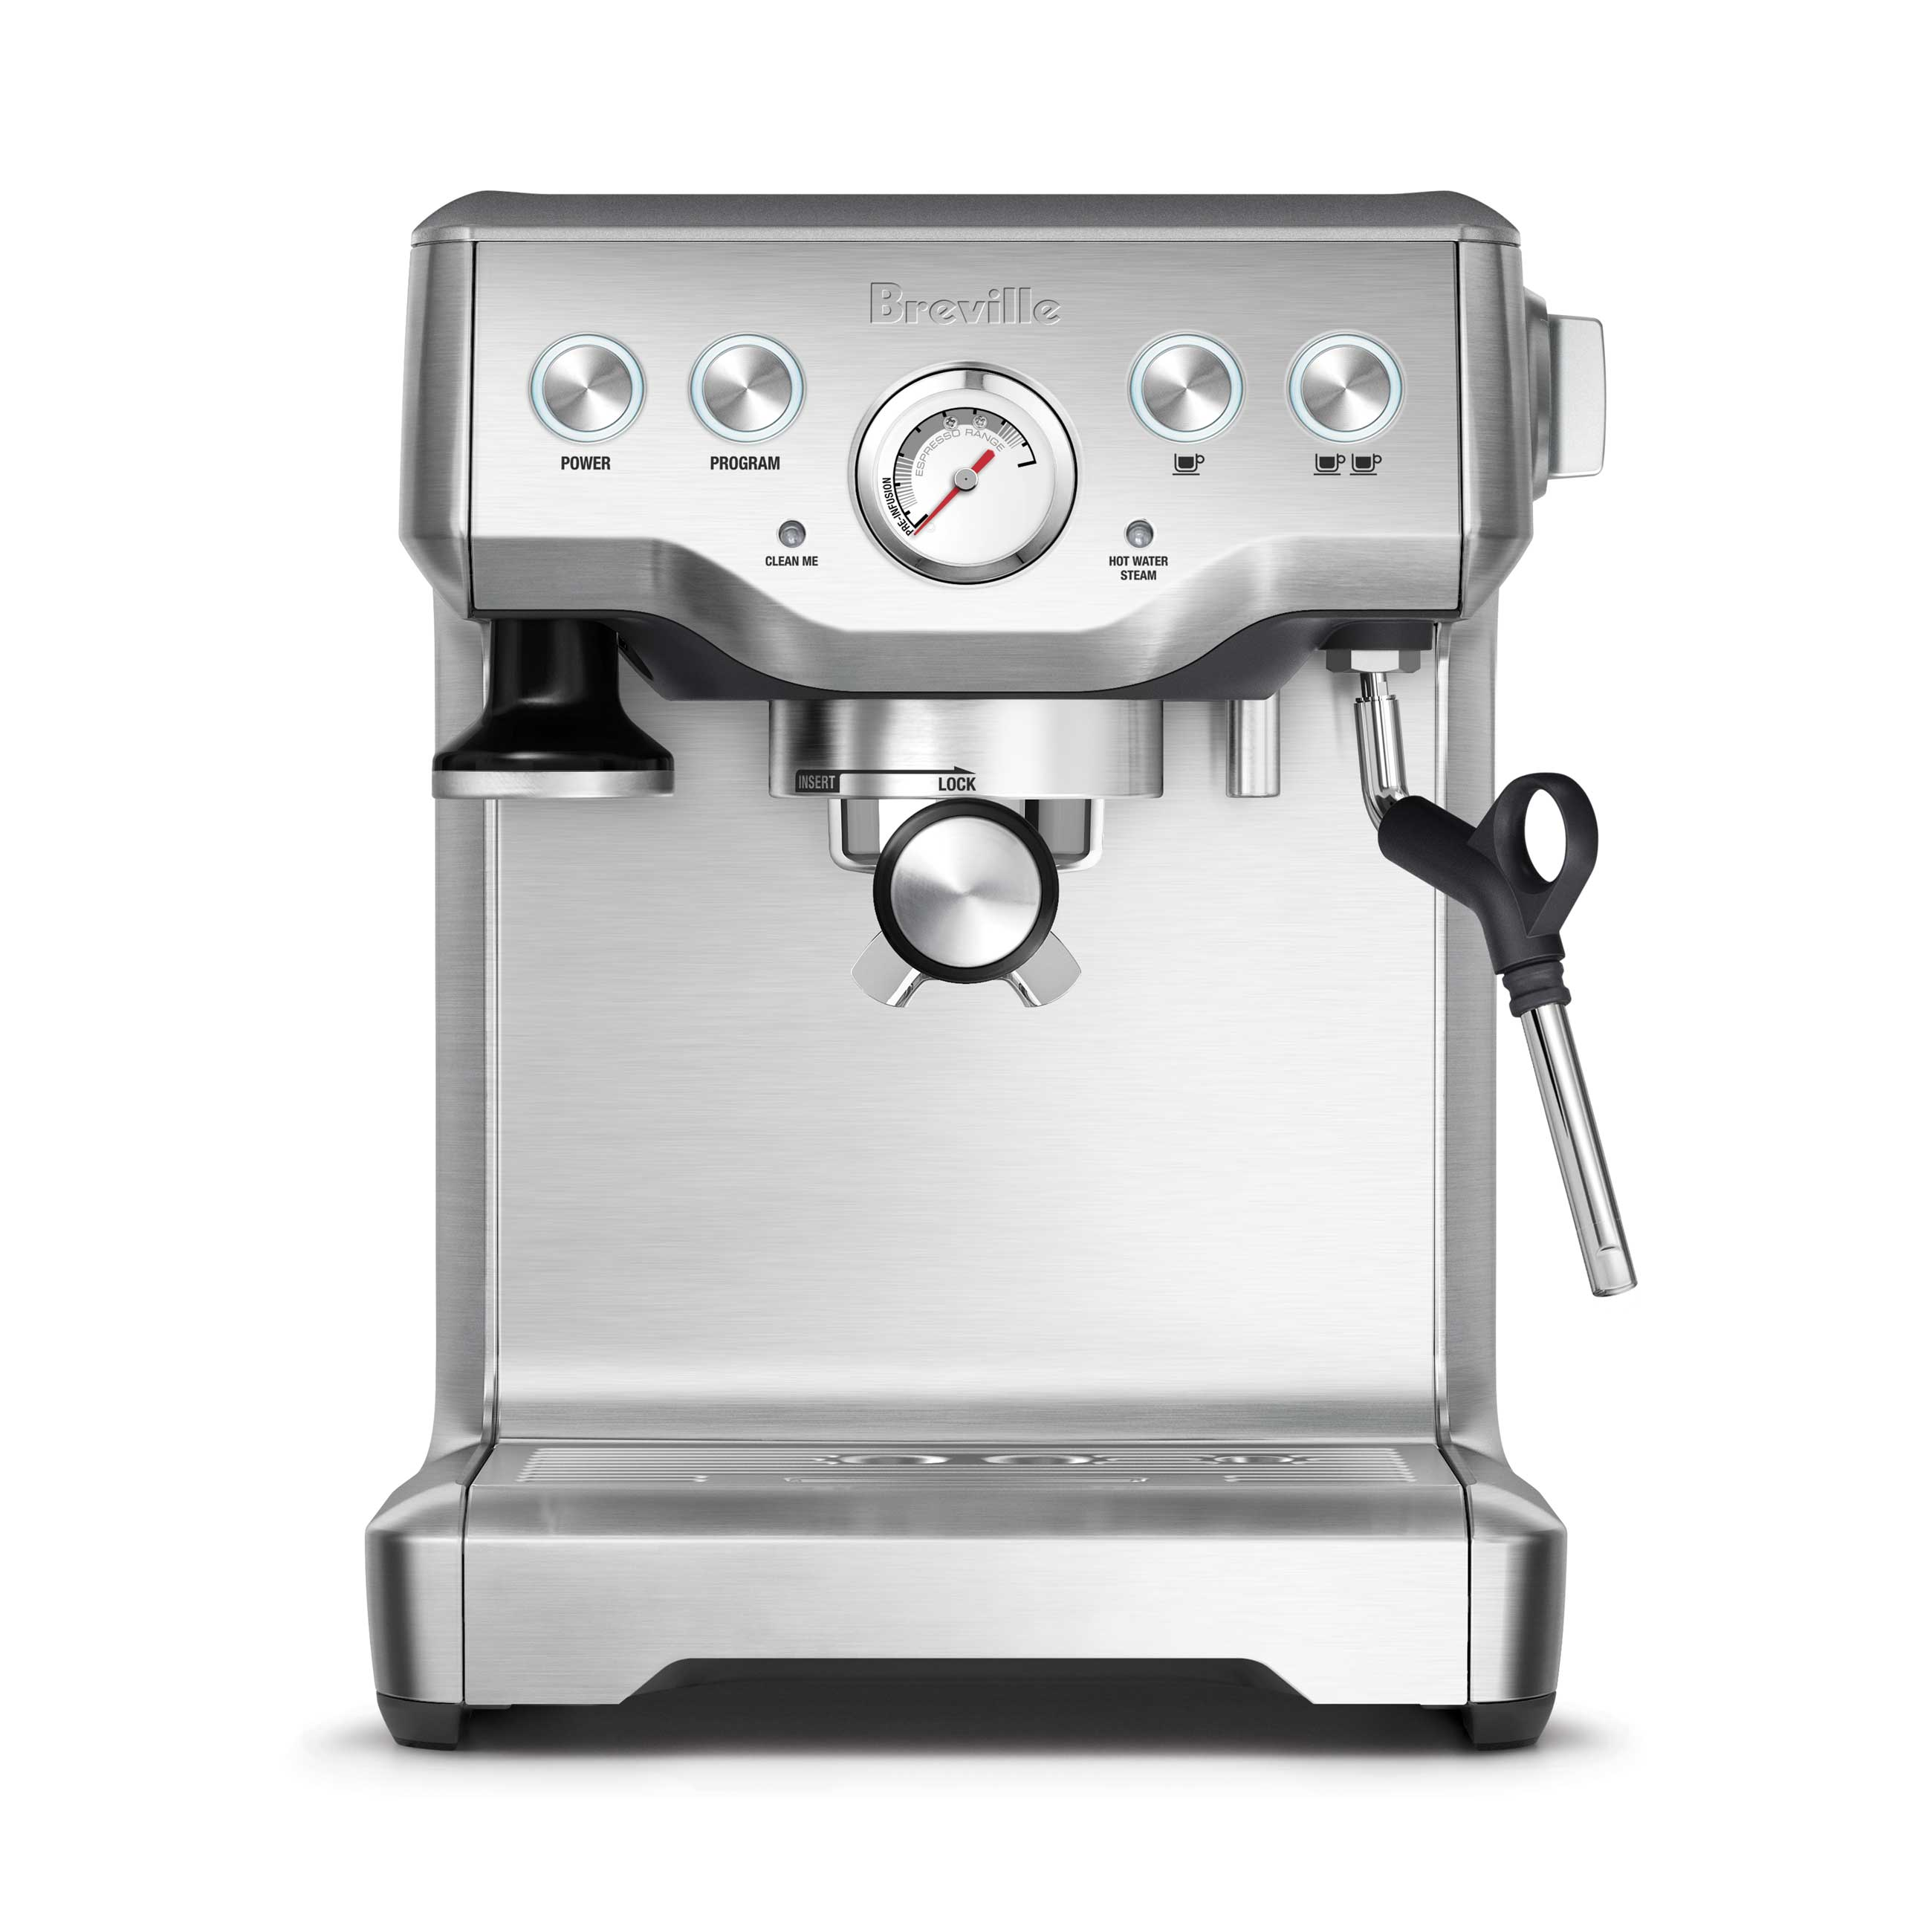 the Infuser Espresso Machine in Brushed Stainless Steel maintenance indicators